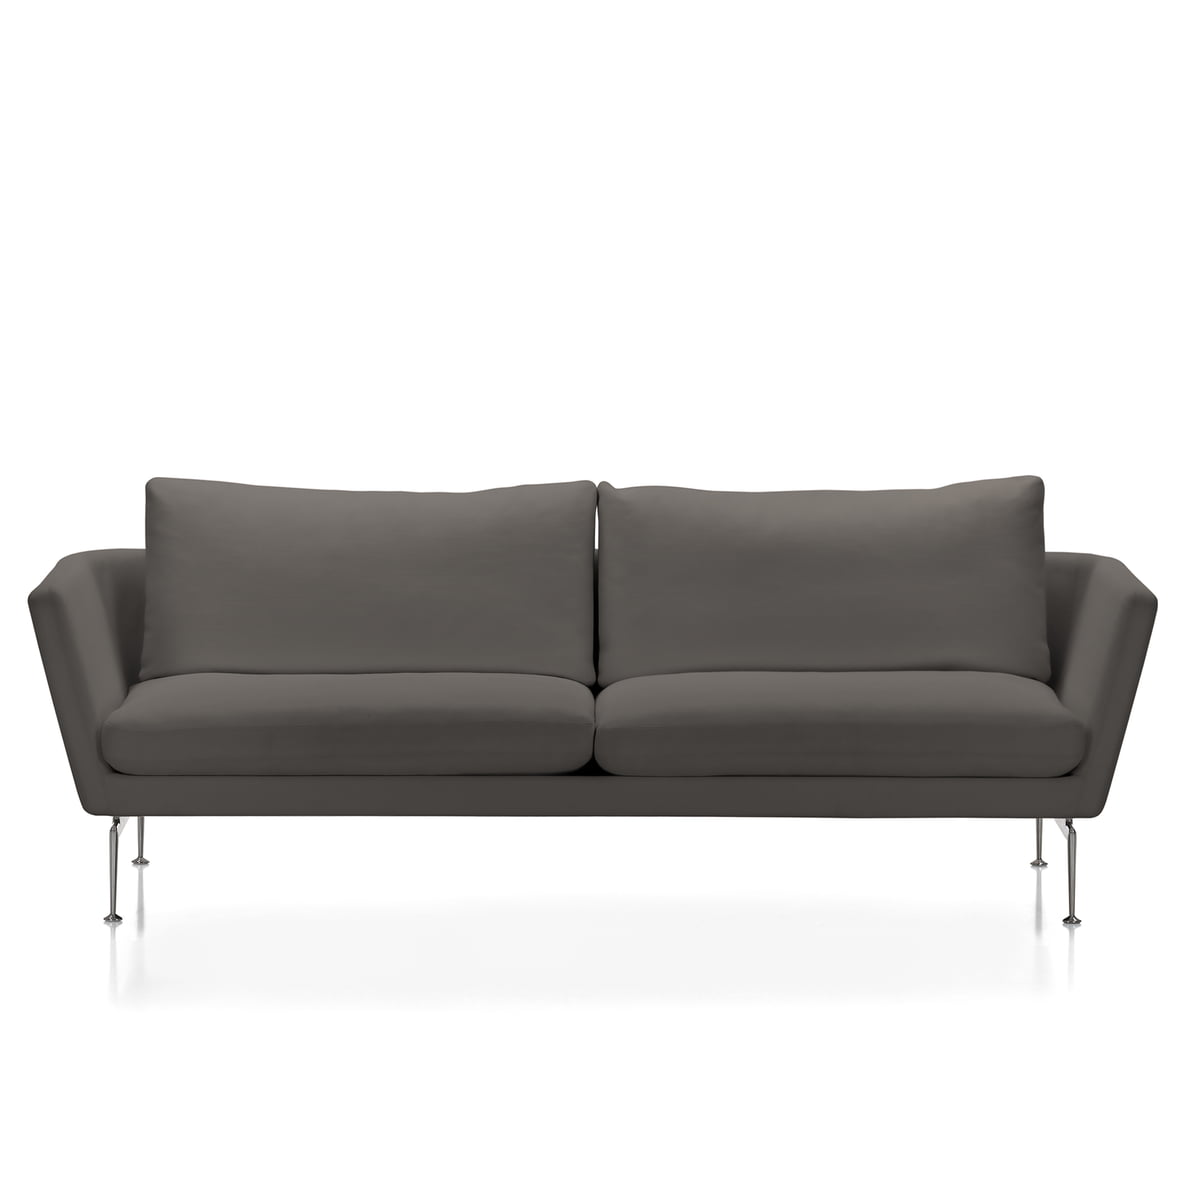 Hay Sofa Mags Suita Sofa By Vitra | Connox Shop